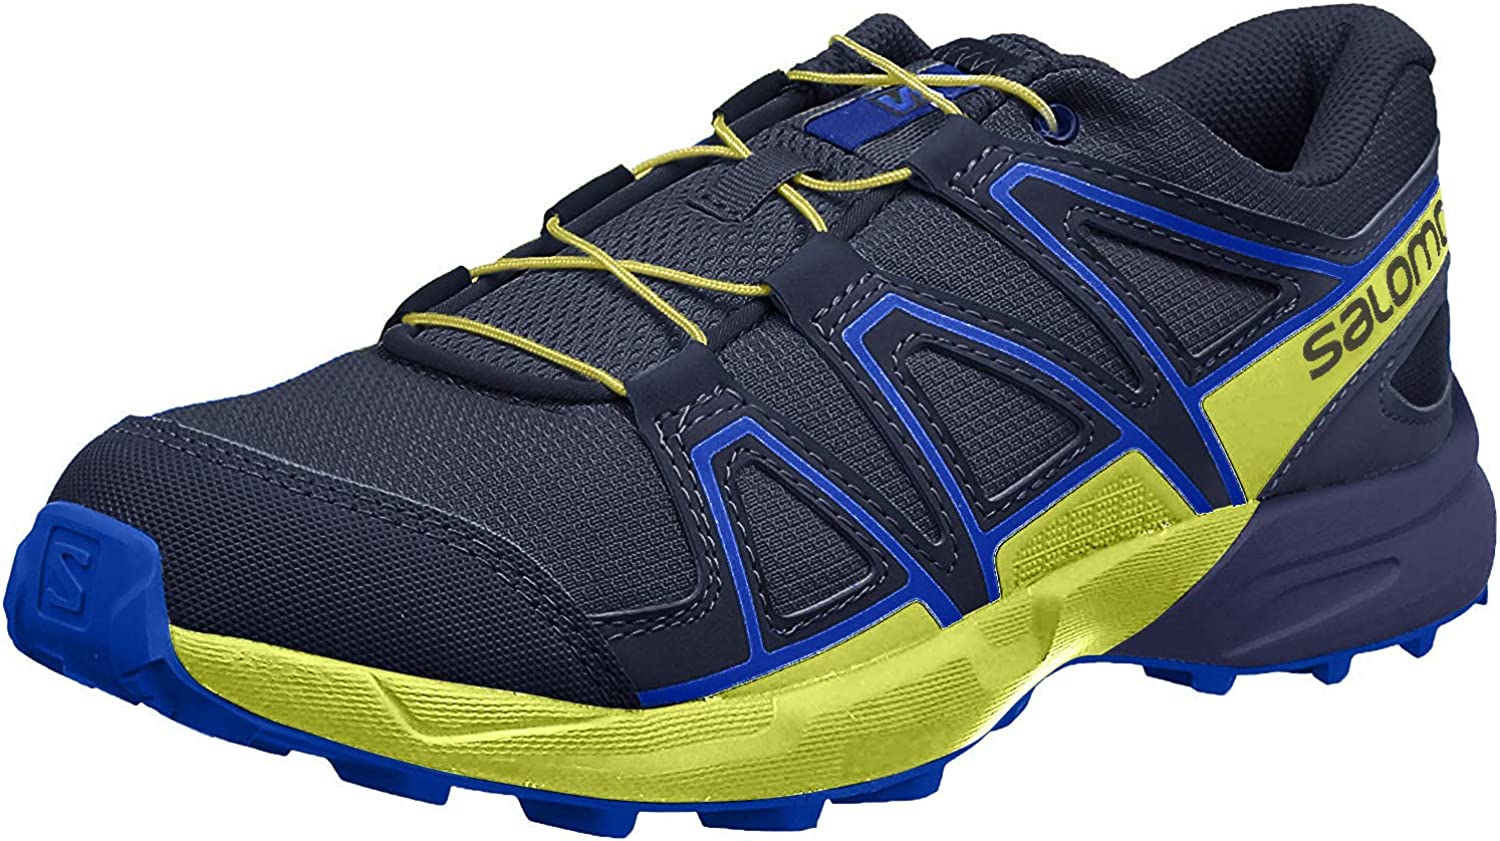 Salomon Speedcross J, Zapatillas de Trail Running para Niños: Amazon.es: Zapatos y complementos